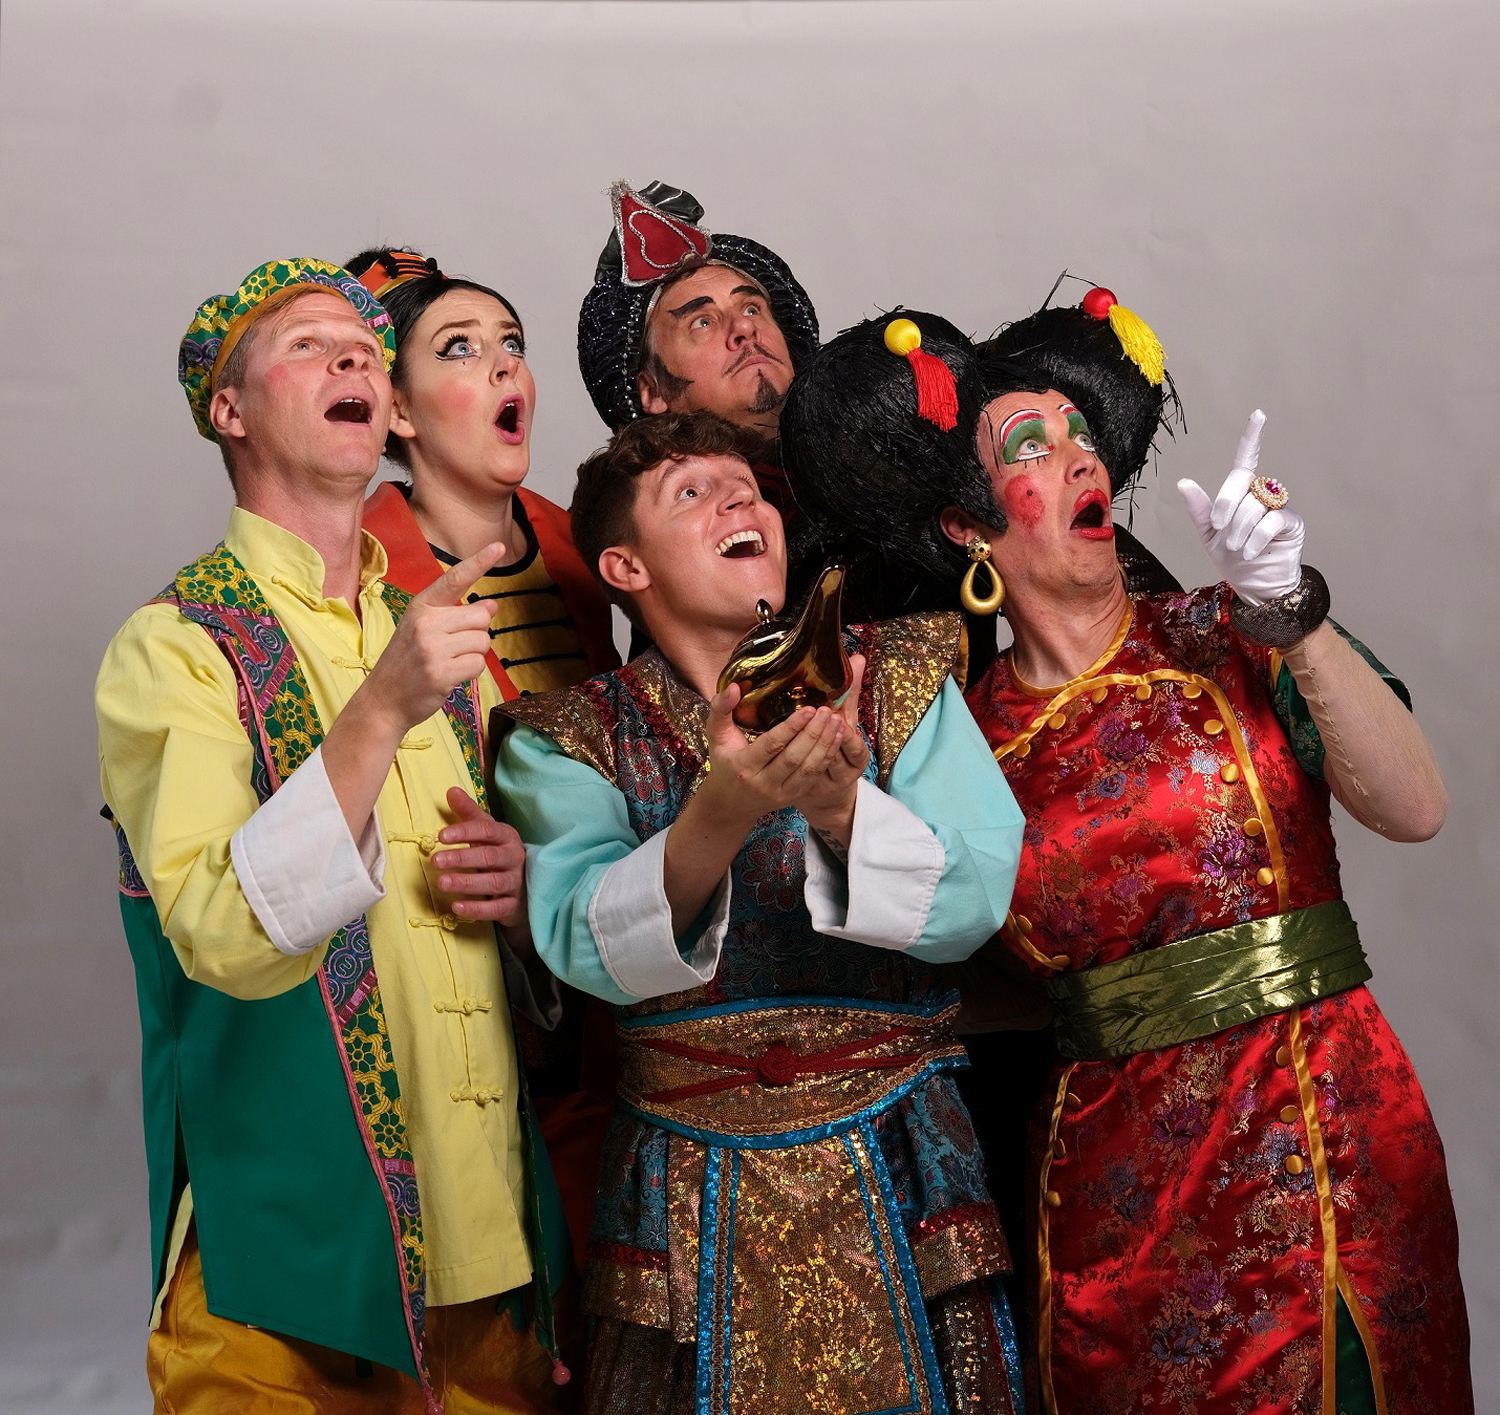 Gala Theatre, Durham: Tickets to pantomime Aladdin are selling fast